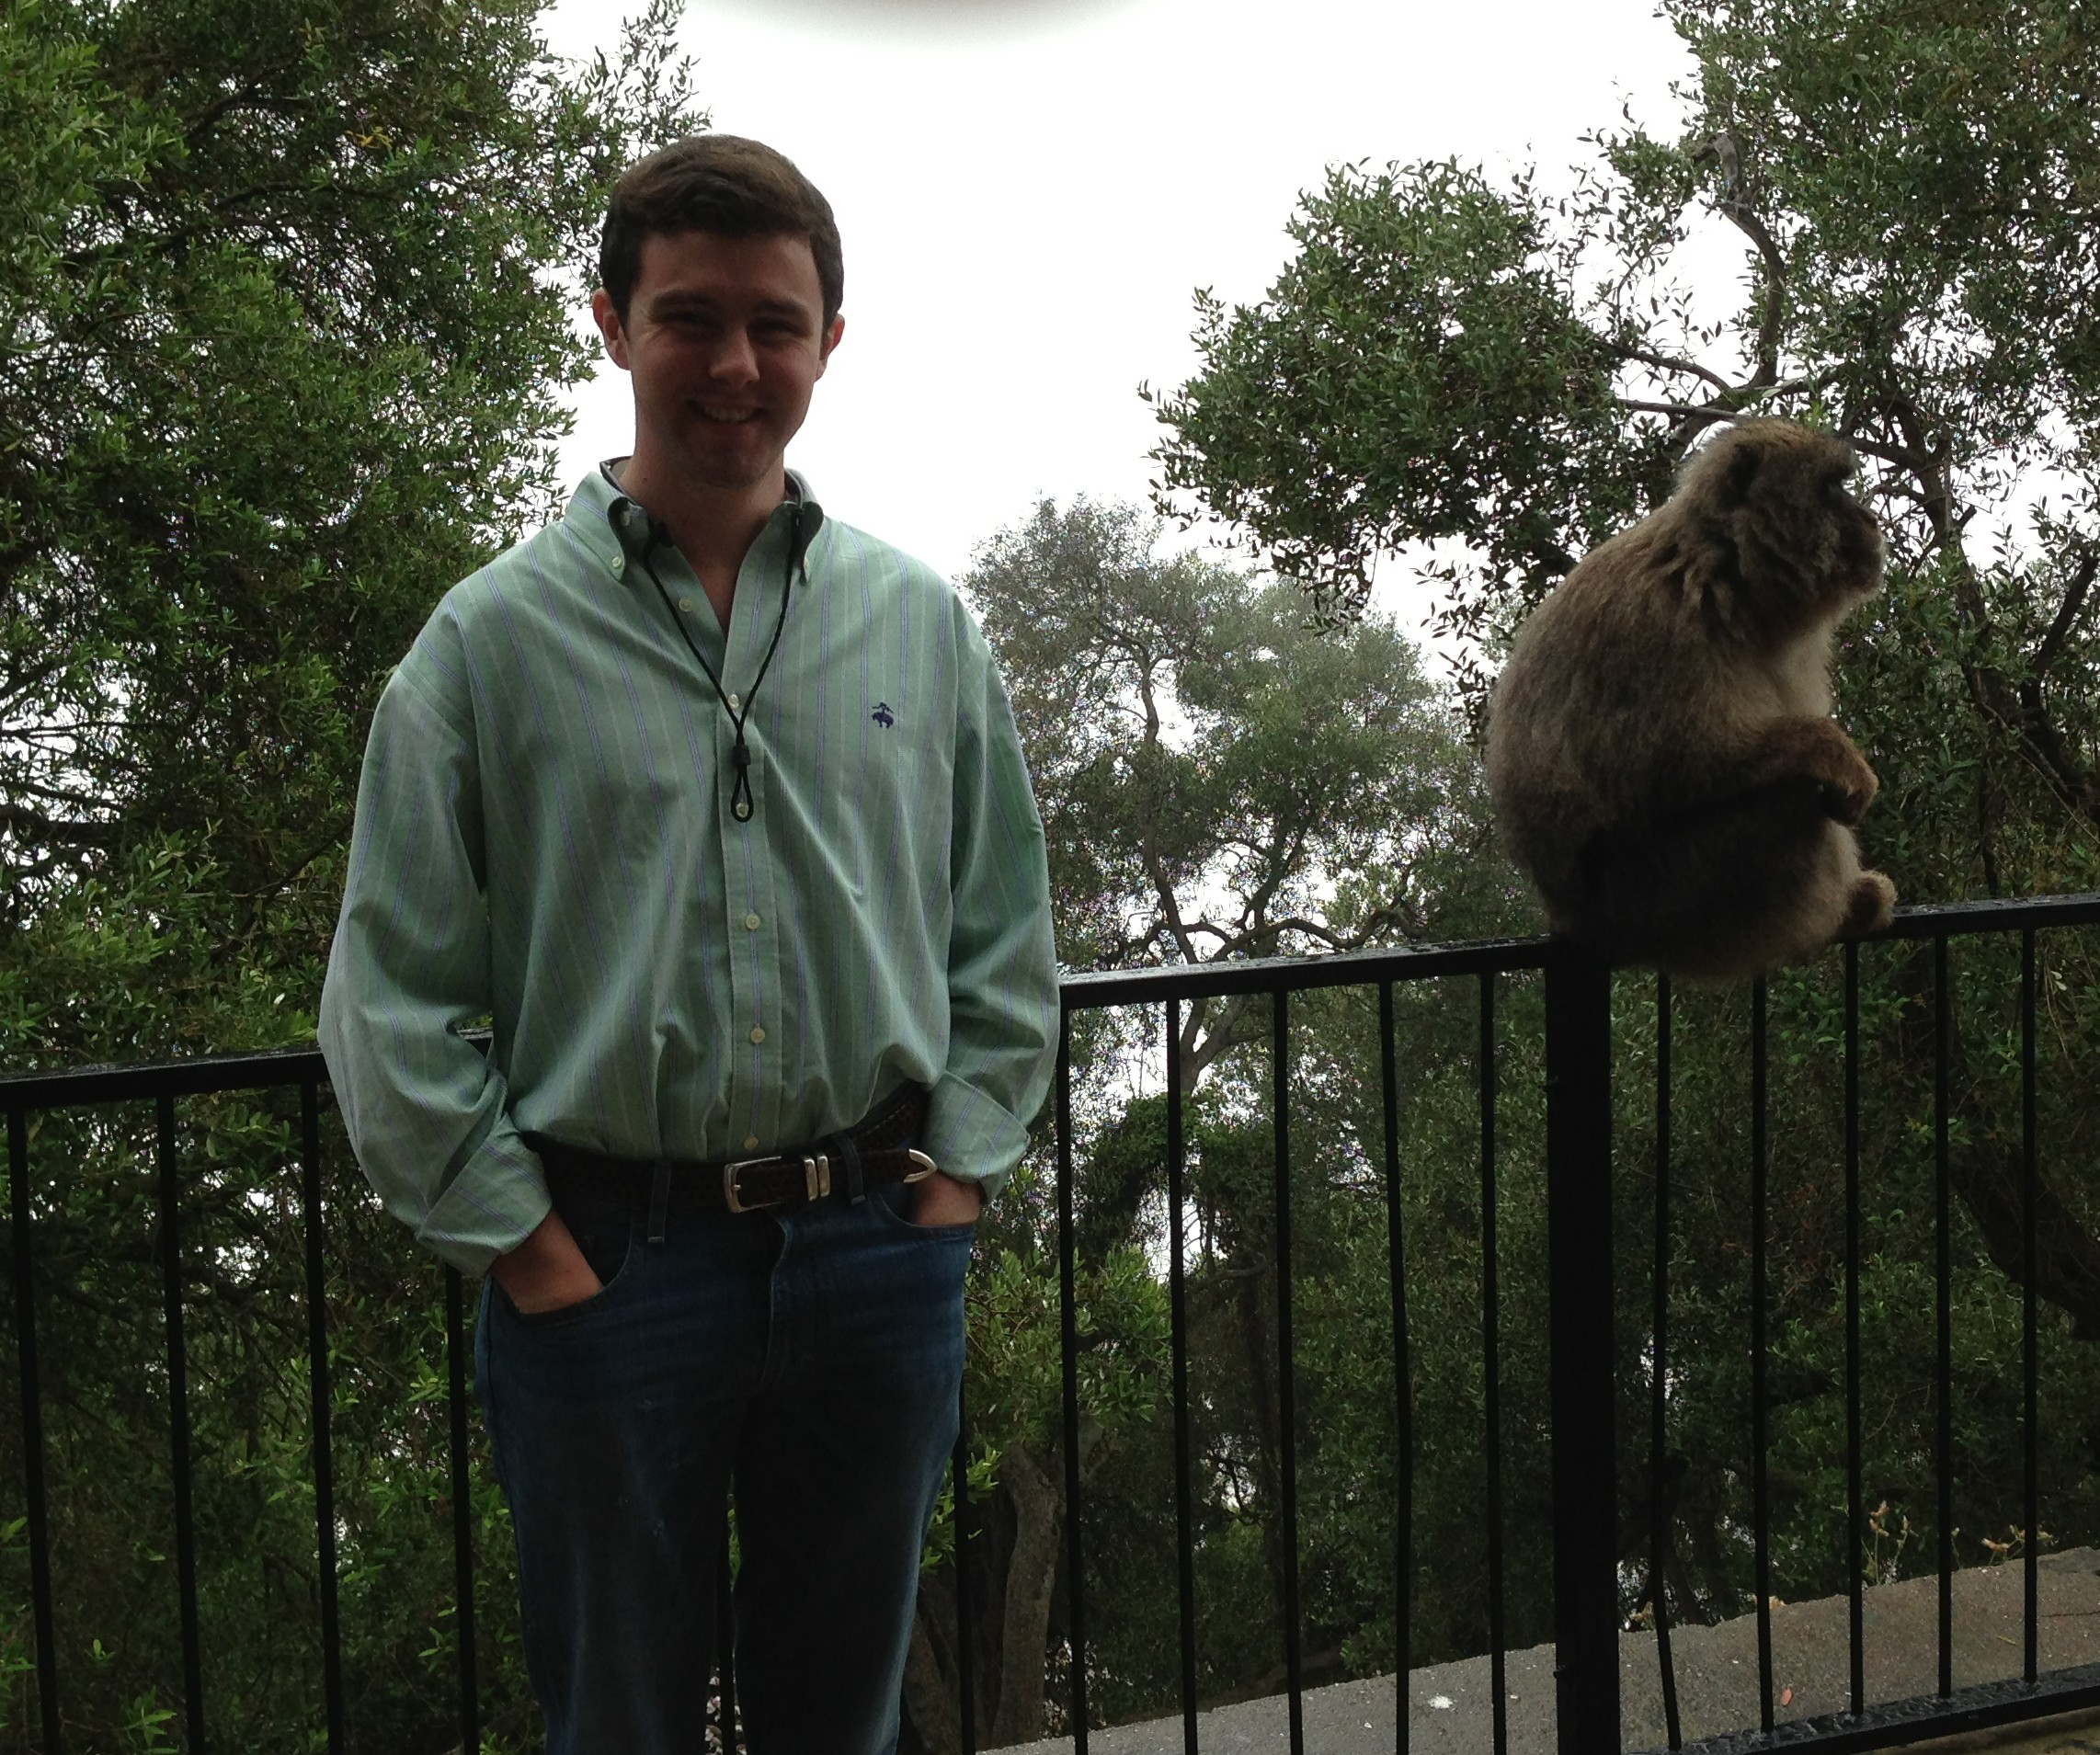 Rob and a Barbary Ape - Rob on the left